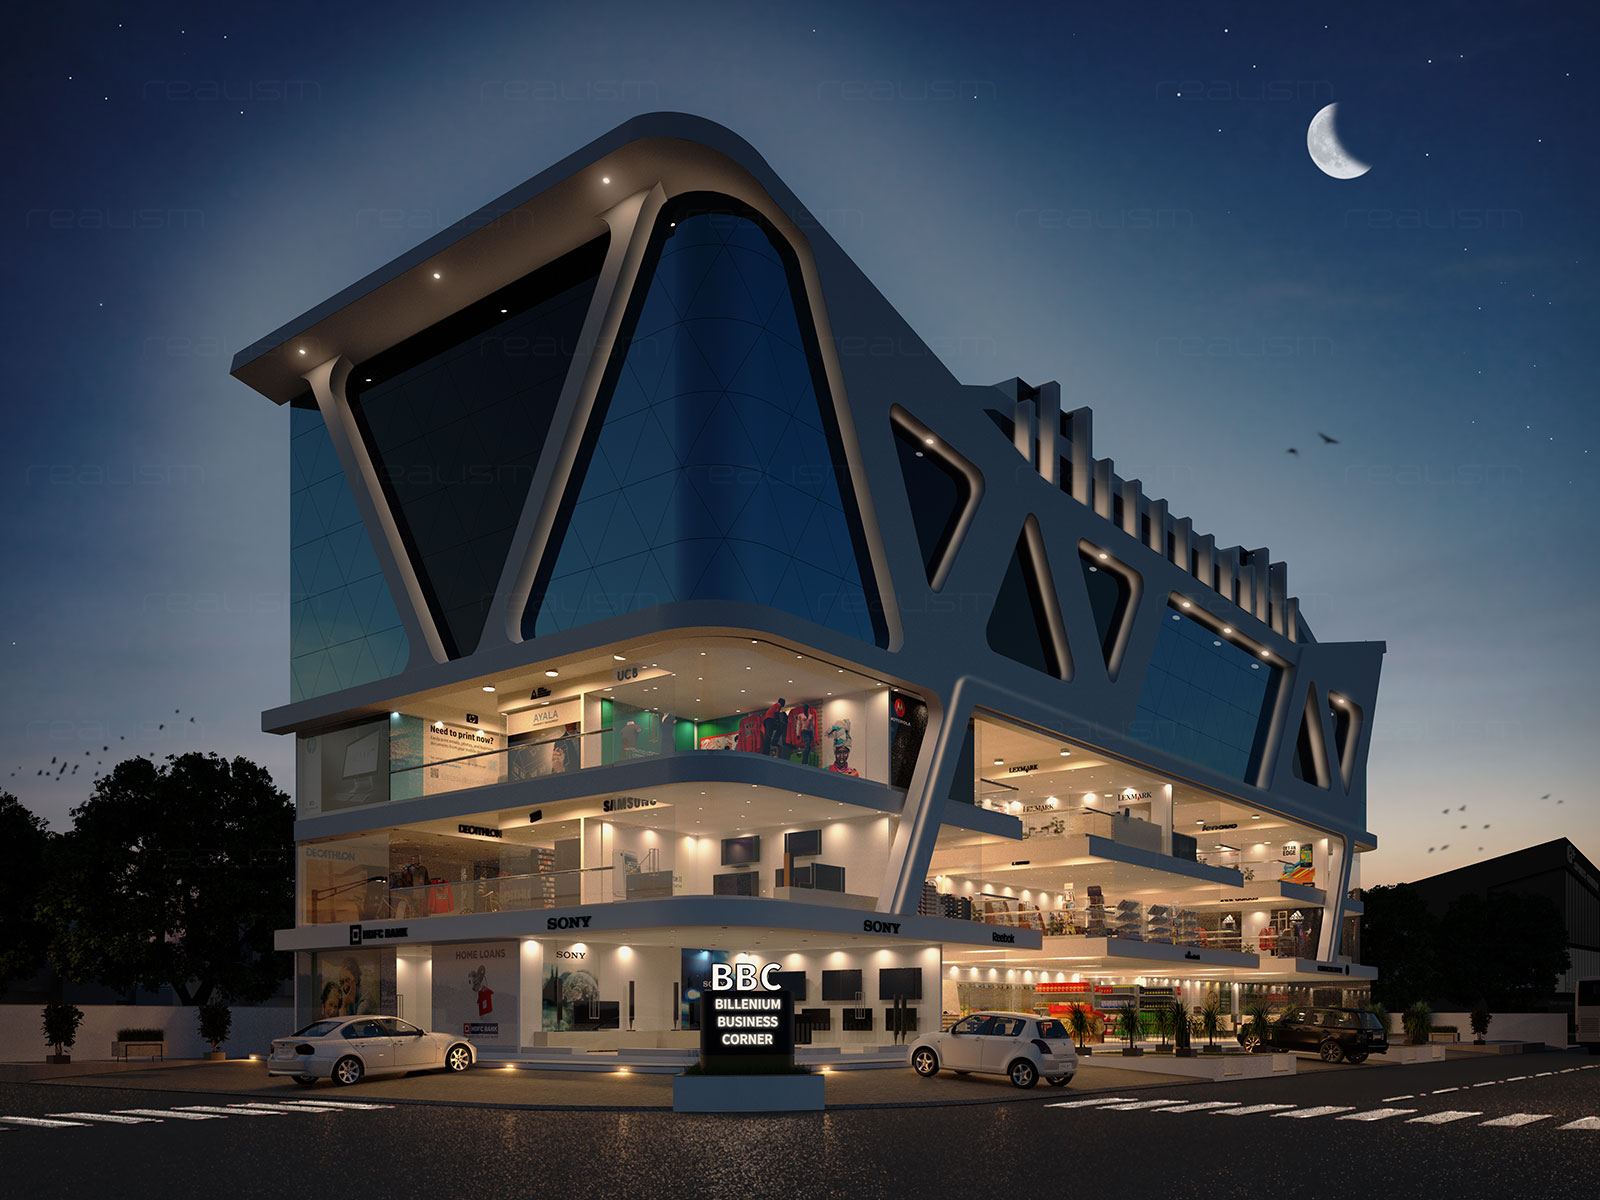 Realism Architectural 3D Exterior Rendering Views